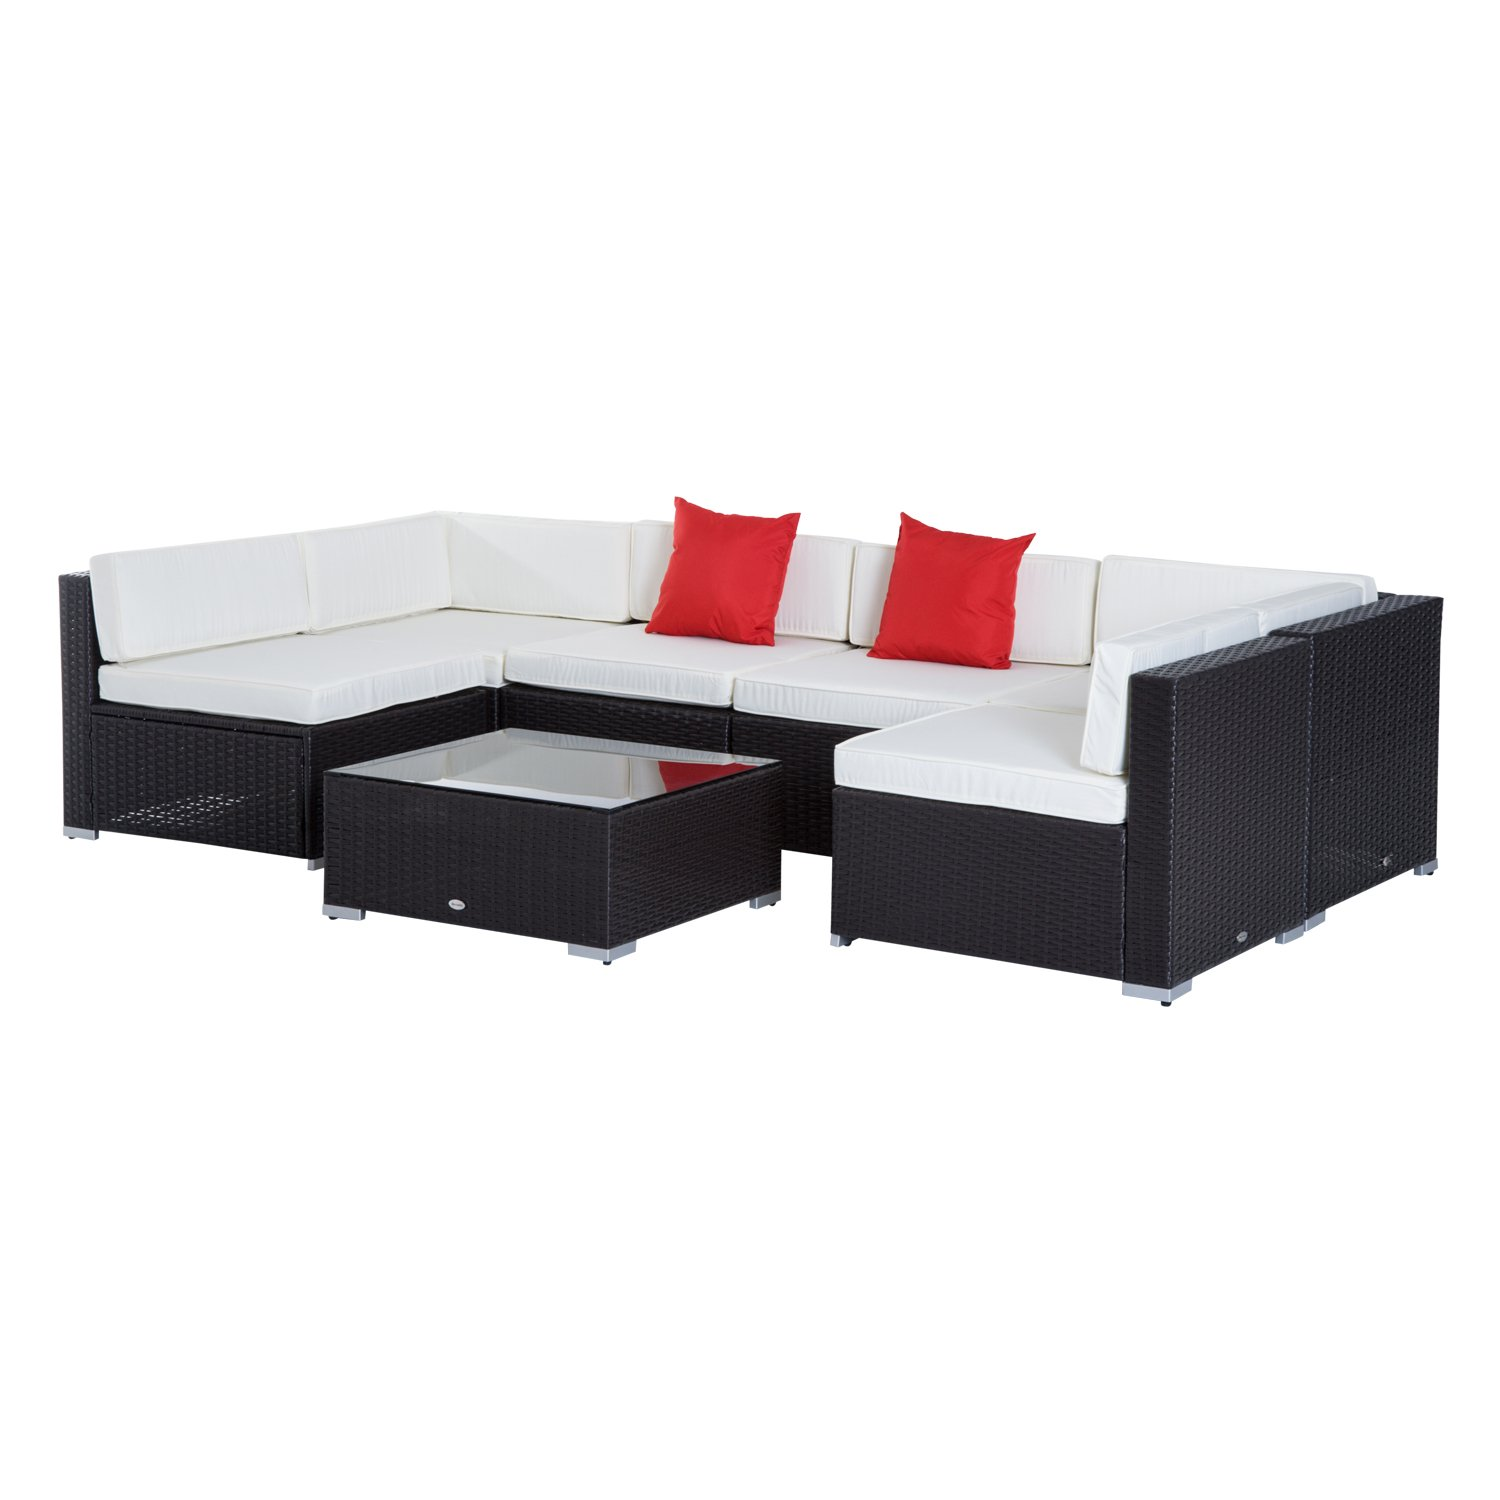 Details about Cushion for Outdoor Furniture Clearance Large Sofa Set Patio  Backyard Couch NEW